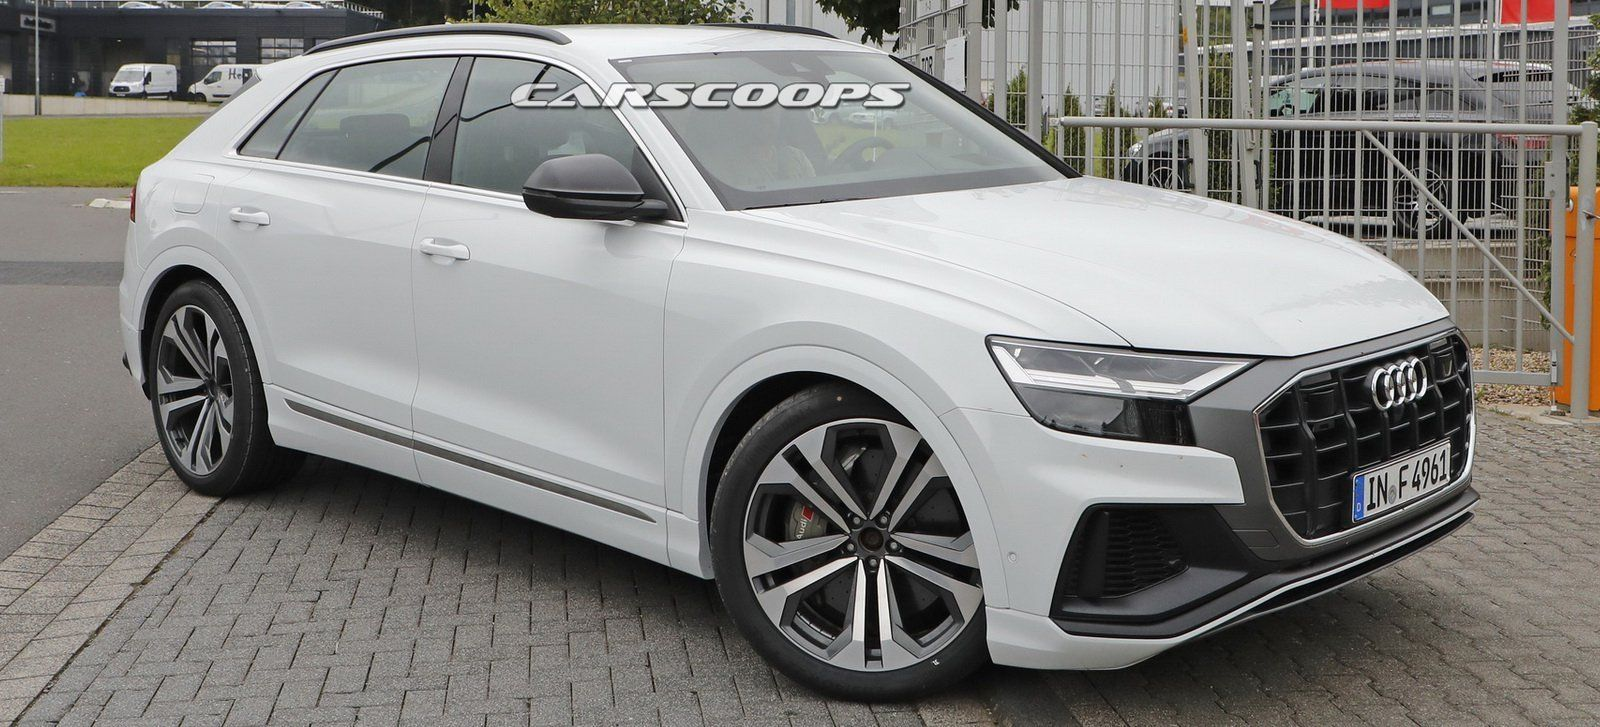 Audi A3 2020 Exterior And Interior Review Cars Review 2019 Audi Audi A3 Audi A3 Price